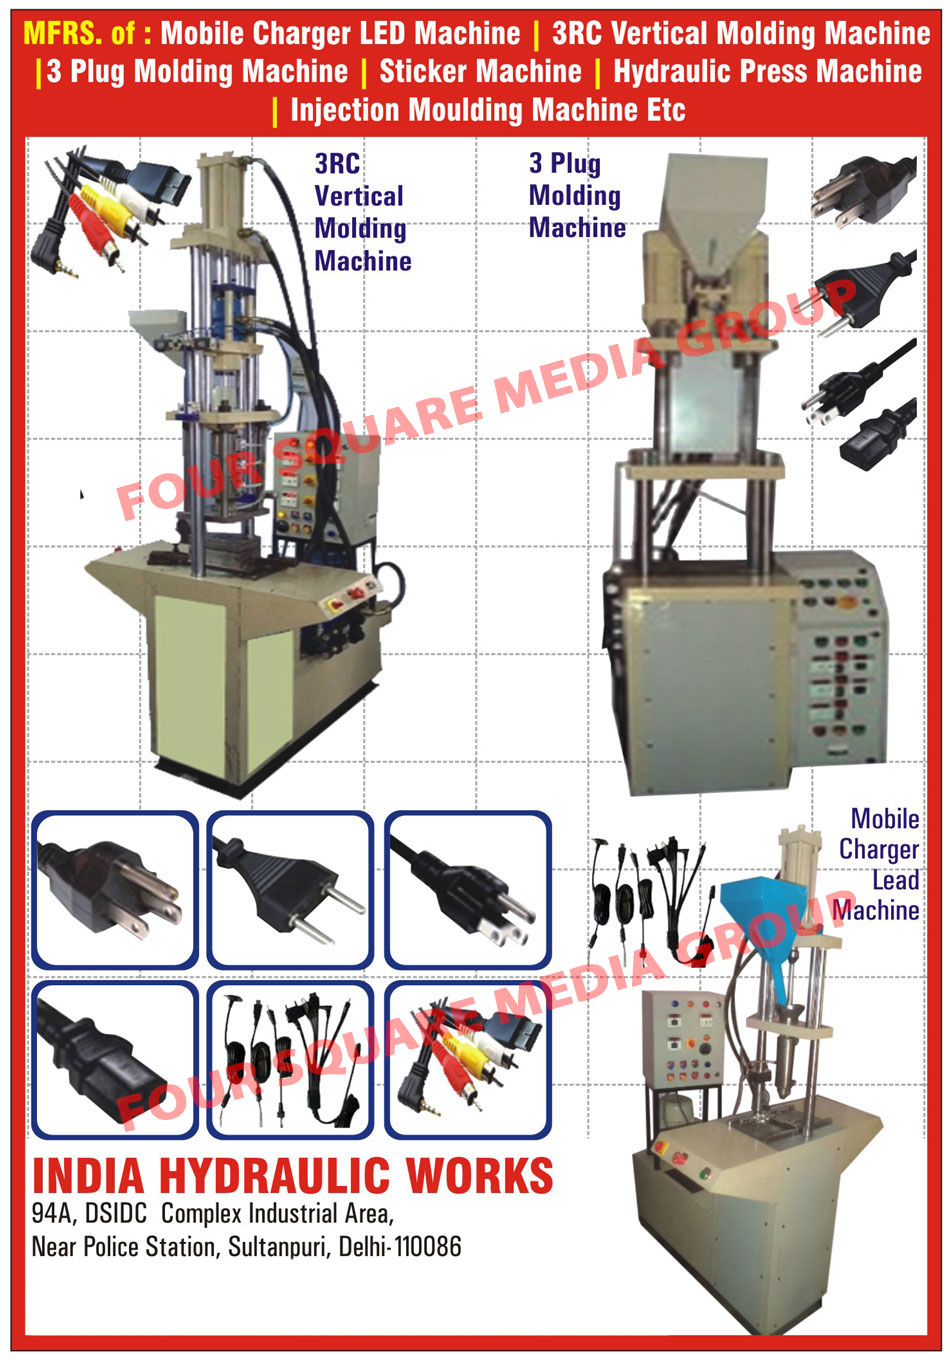 Rubber Hydraulic Press, Mobile Charger Single Barrel Machines, Double Colour PVC Sticker Machines, Injection Moulding Machines, Cord Moulding Machines, Plug Moulding Machines,